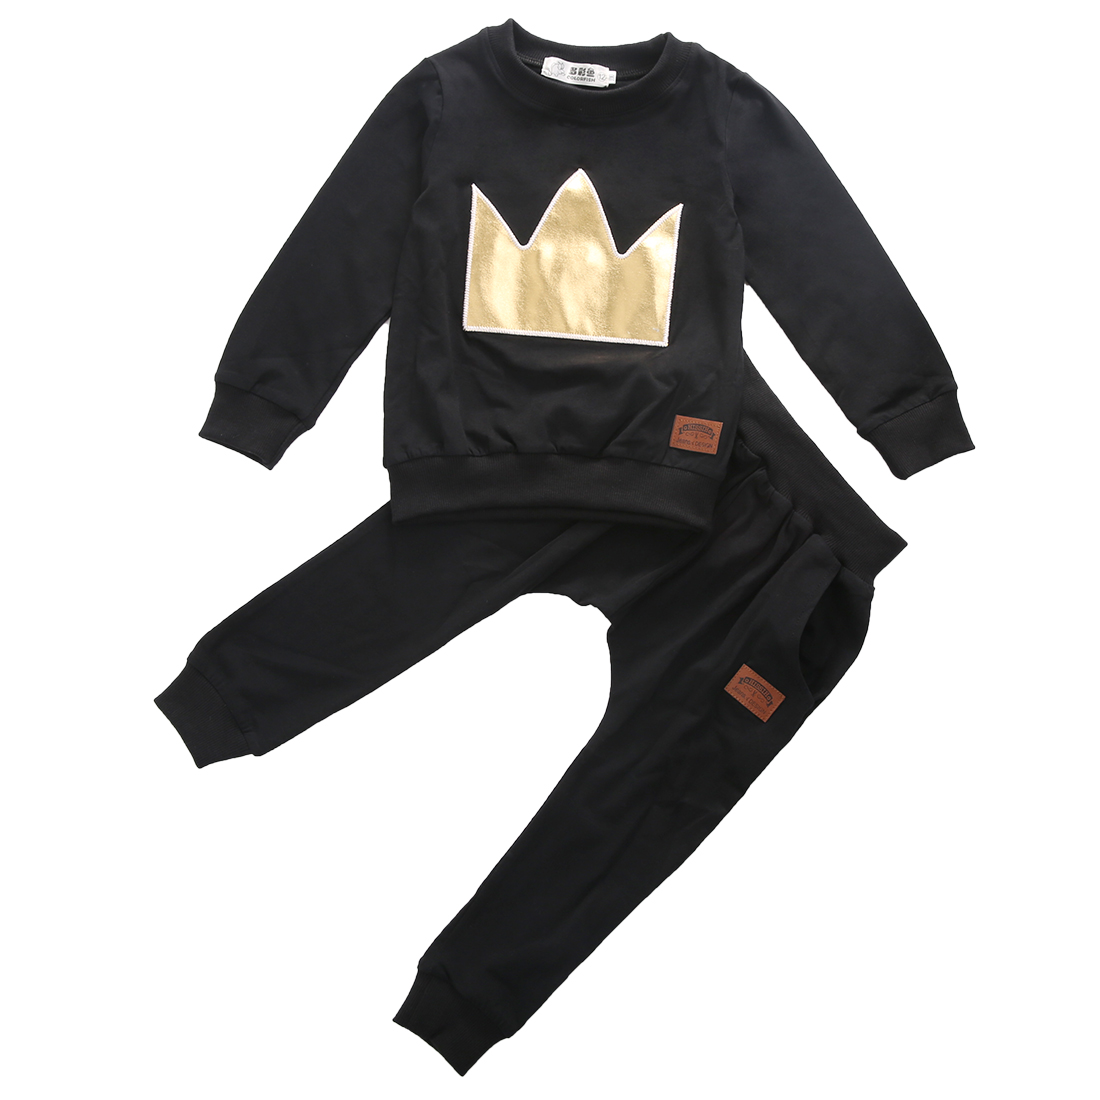 New Year Baby Toddler Boys Girls Long Sleeve Crown Stitched Tops T shirt Leggings Outfits Set